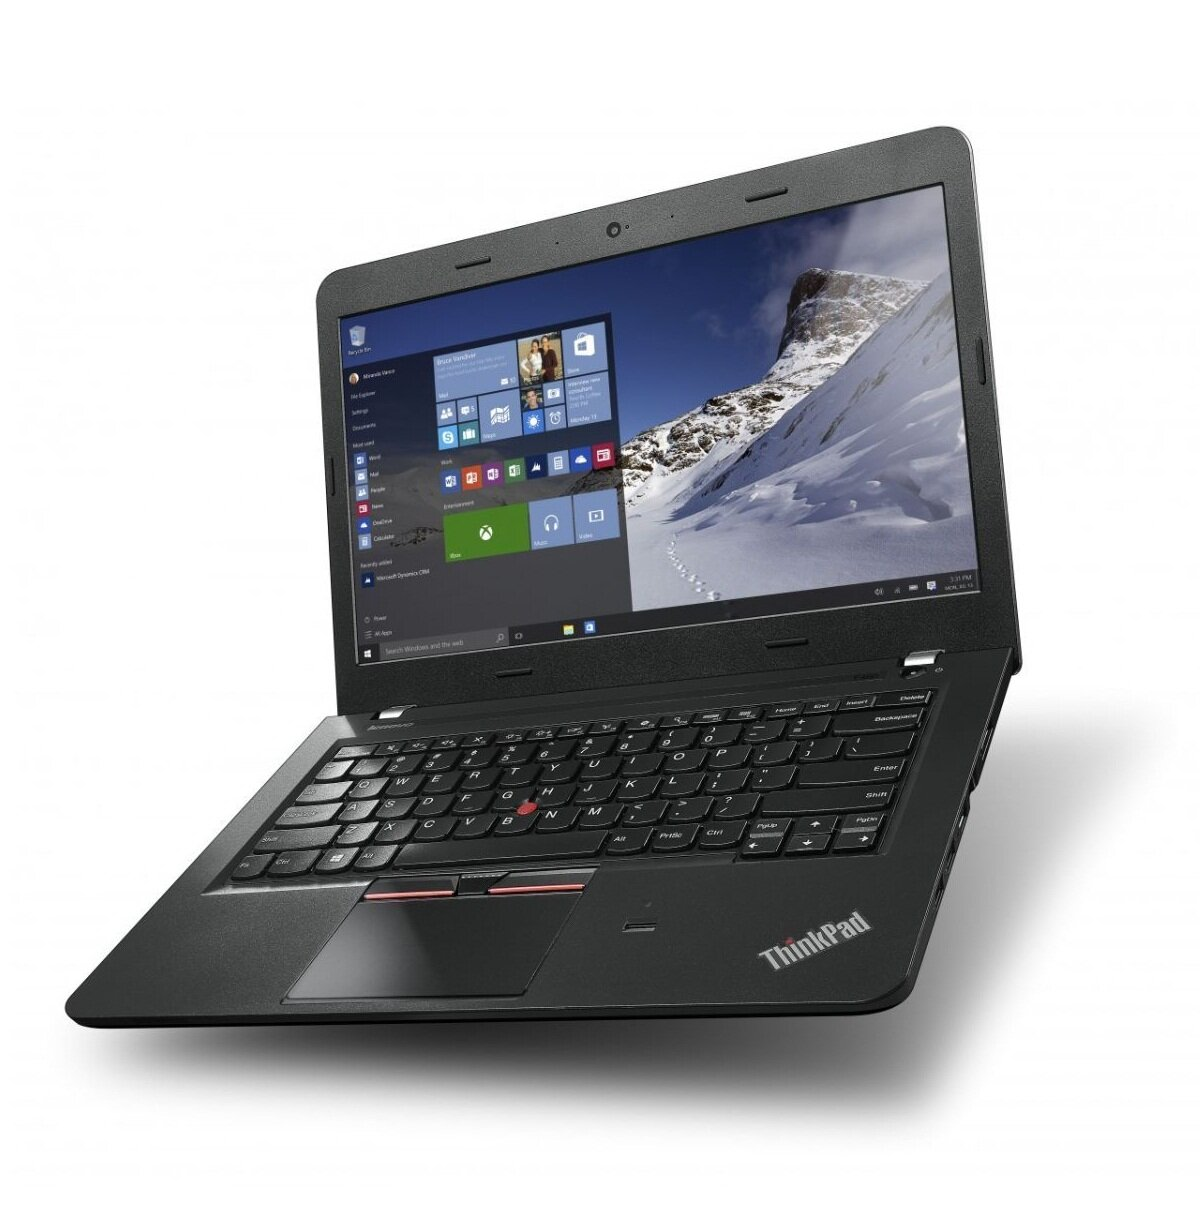 Laptop Lenovo Thinkpad E560 20EV000NVA (Black)